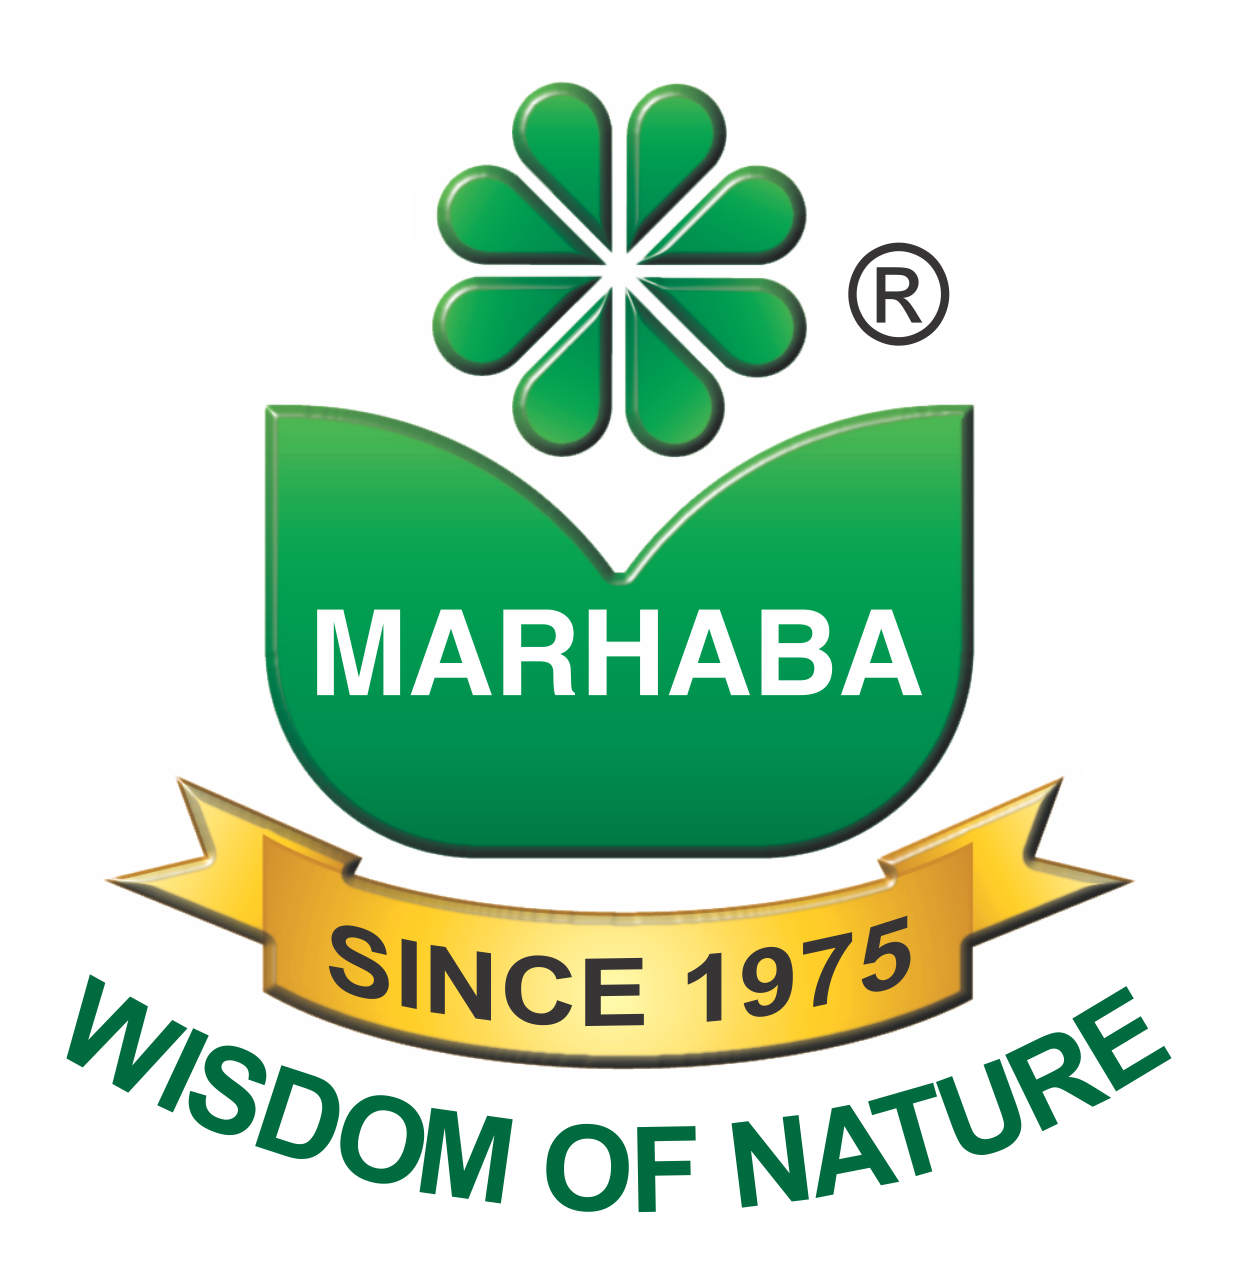 MARHABA LABORATORIES (PVT.) LTD.